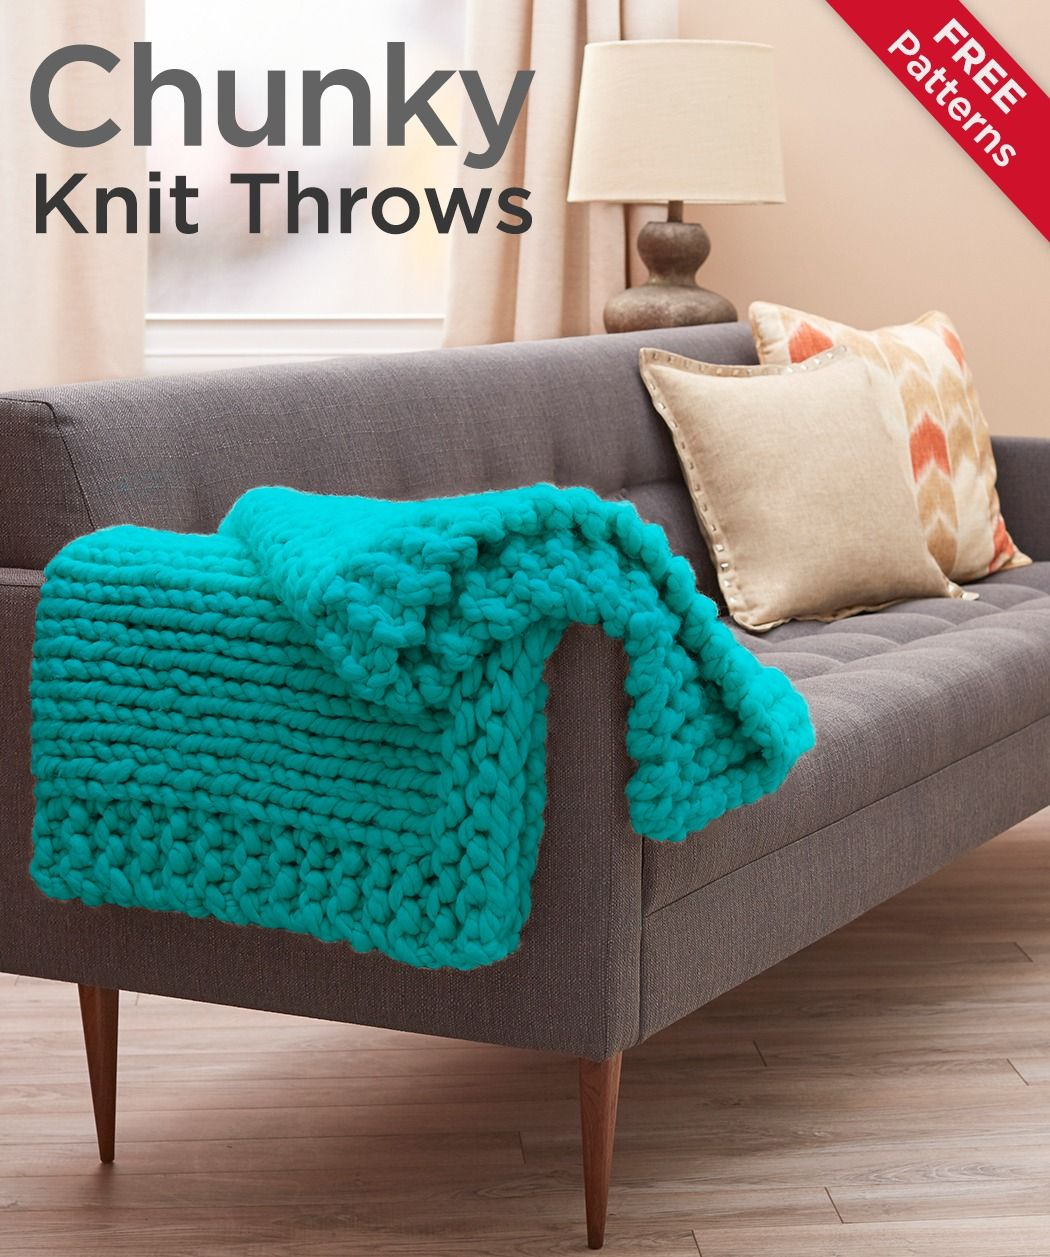 Knitting A Throw Blanket: Chunky Knit Throws Free Patterns -- Chunky Throws Are All